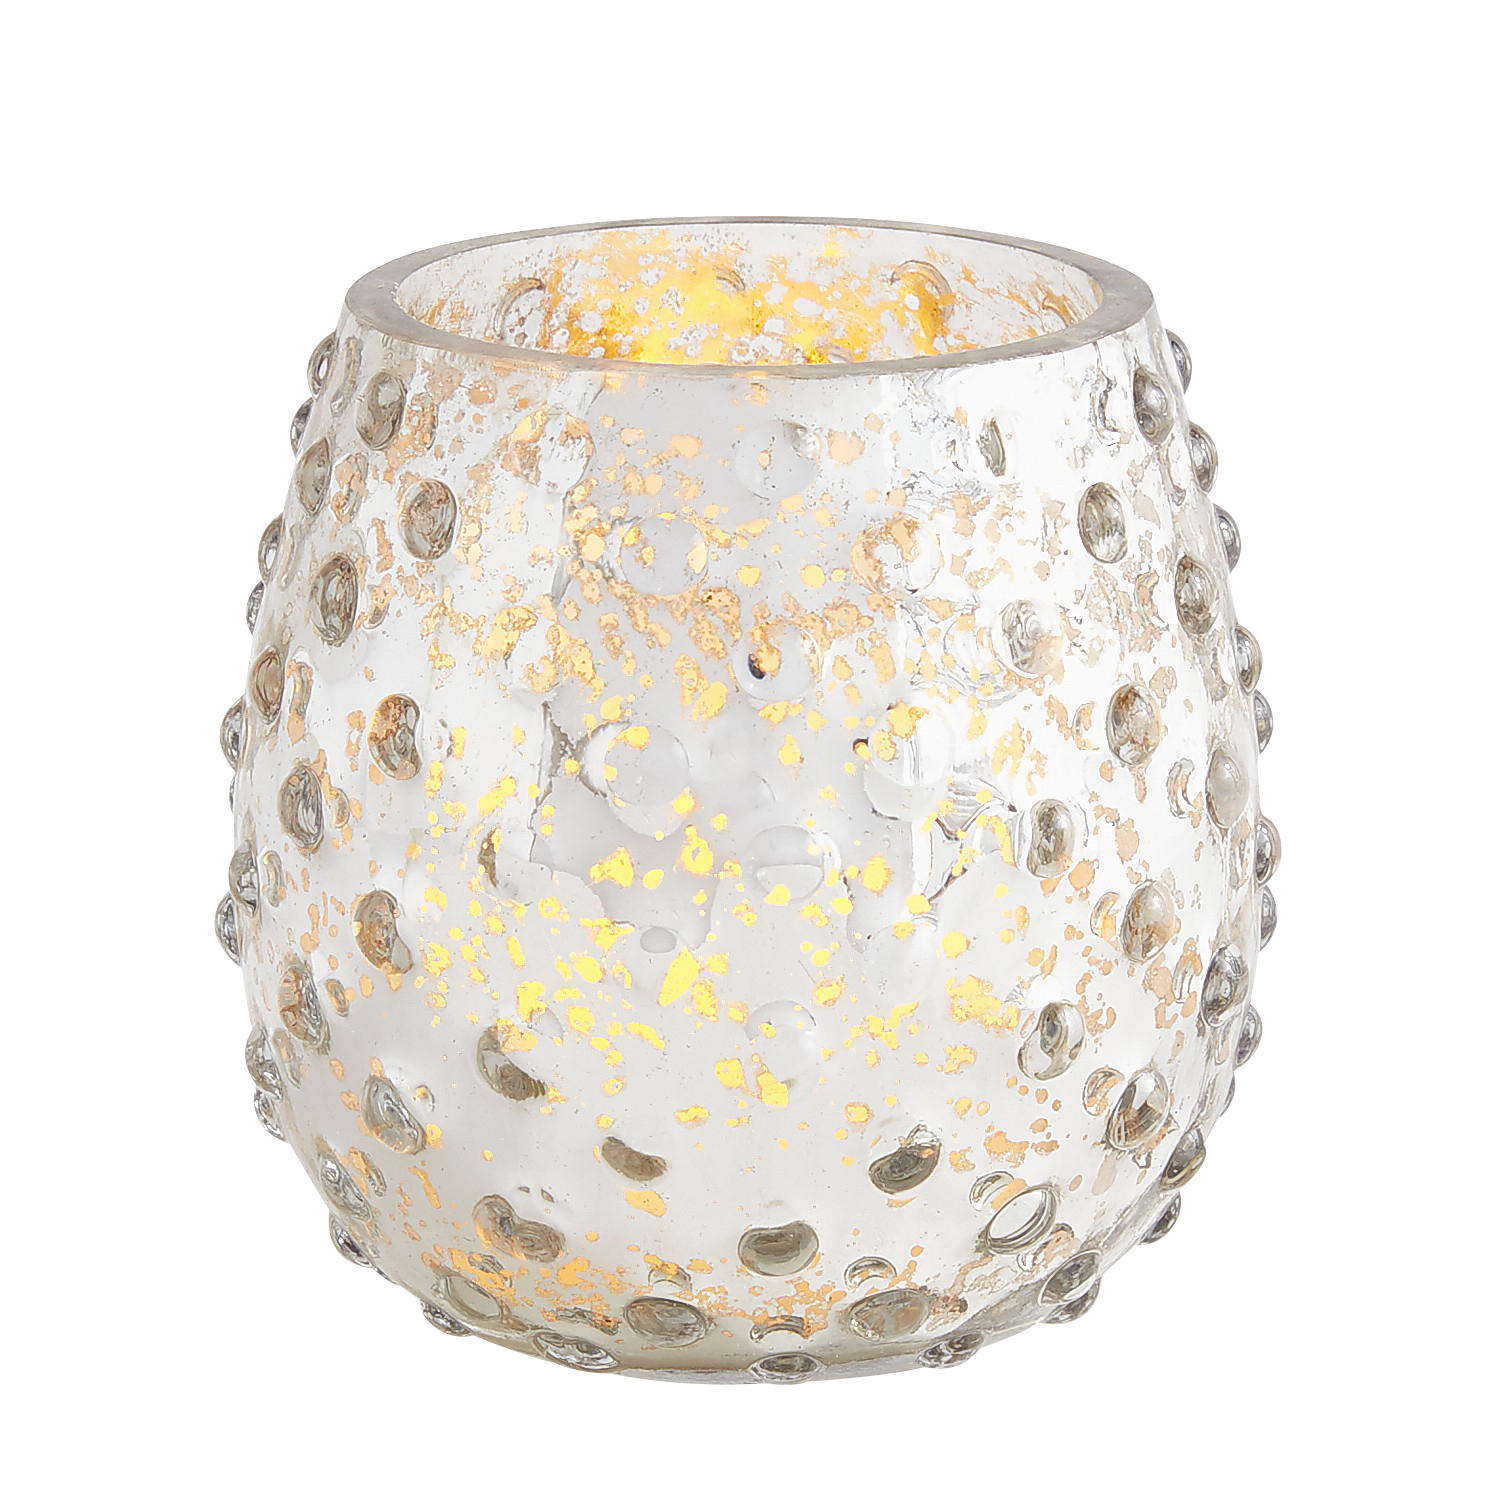 Silver Mercury Glass Knobbed Tealight Candle Holder